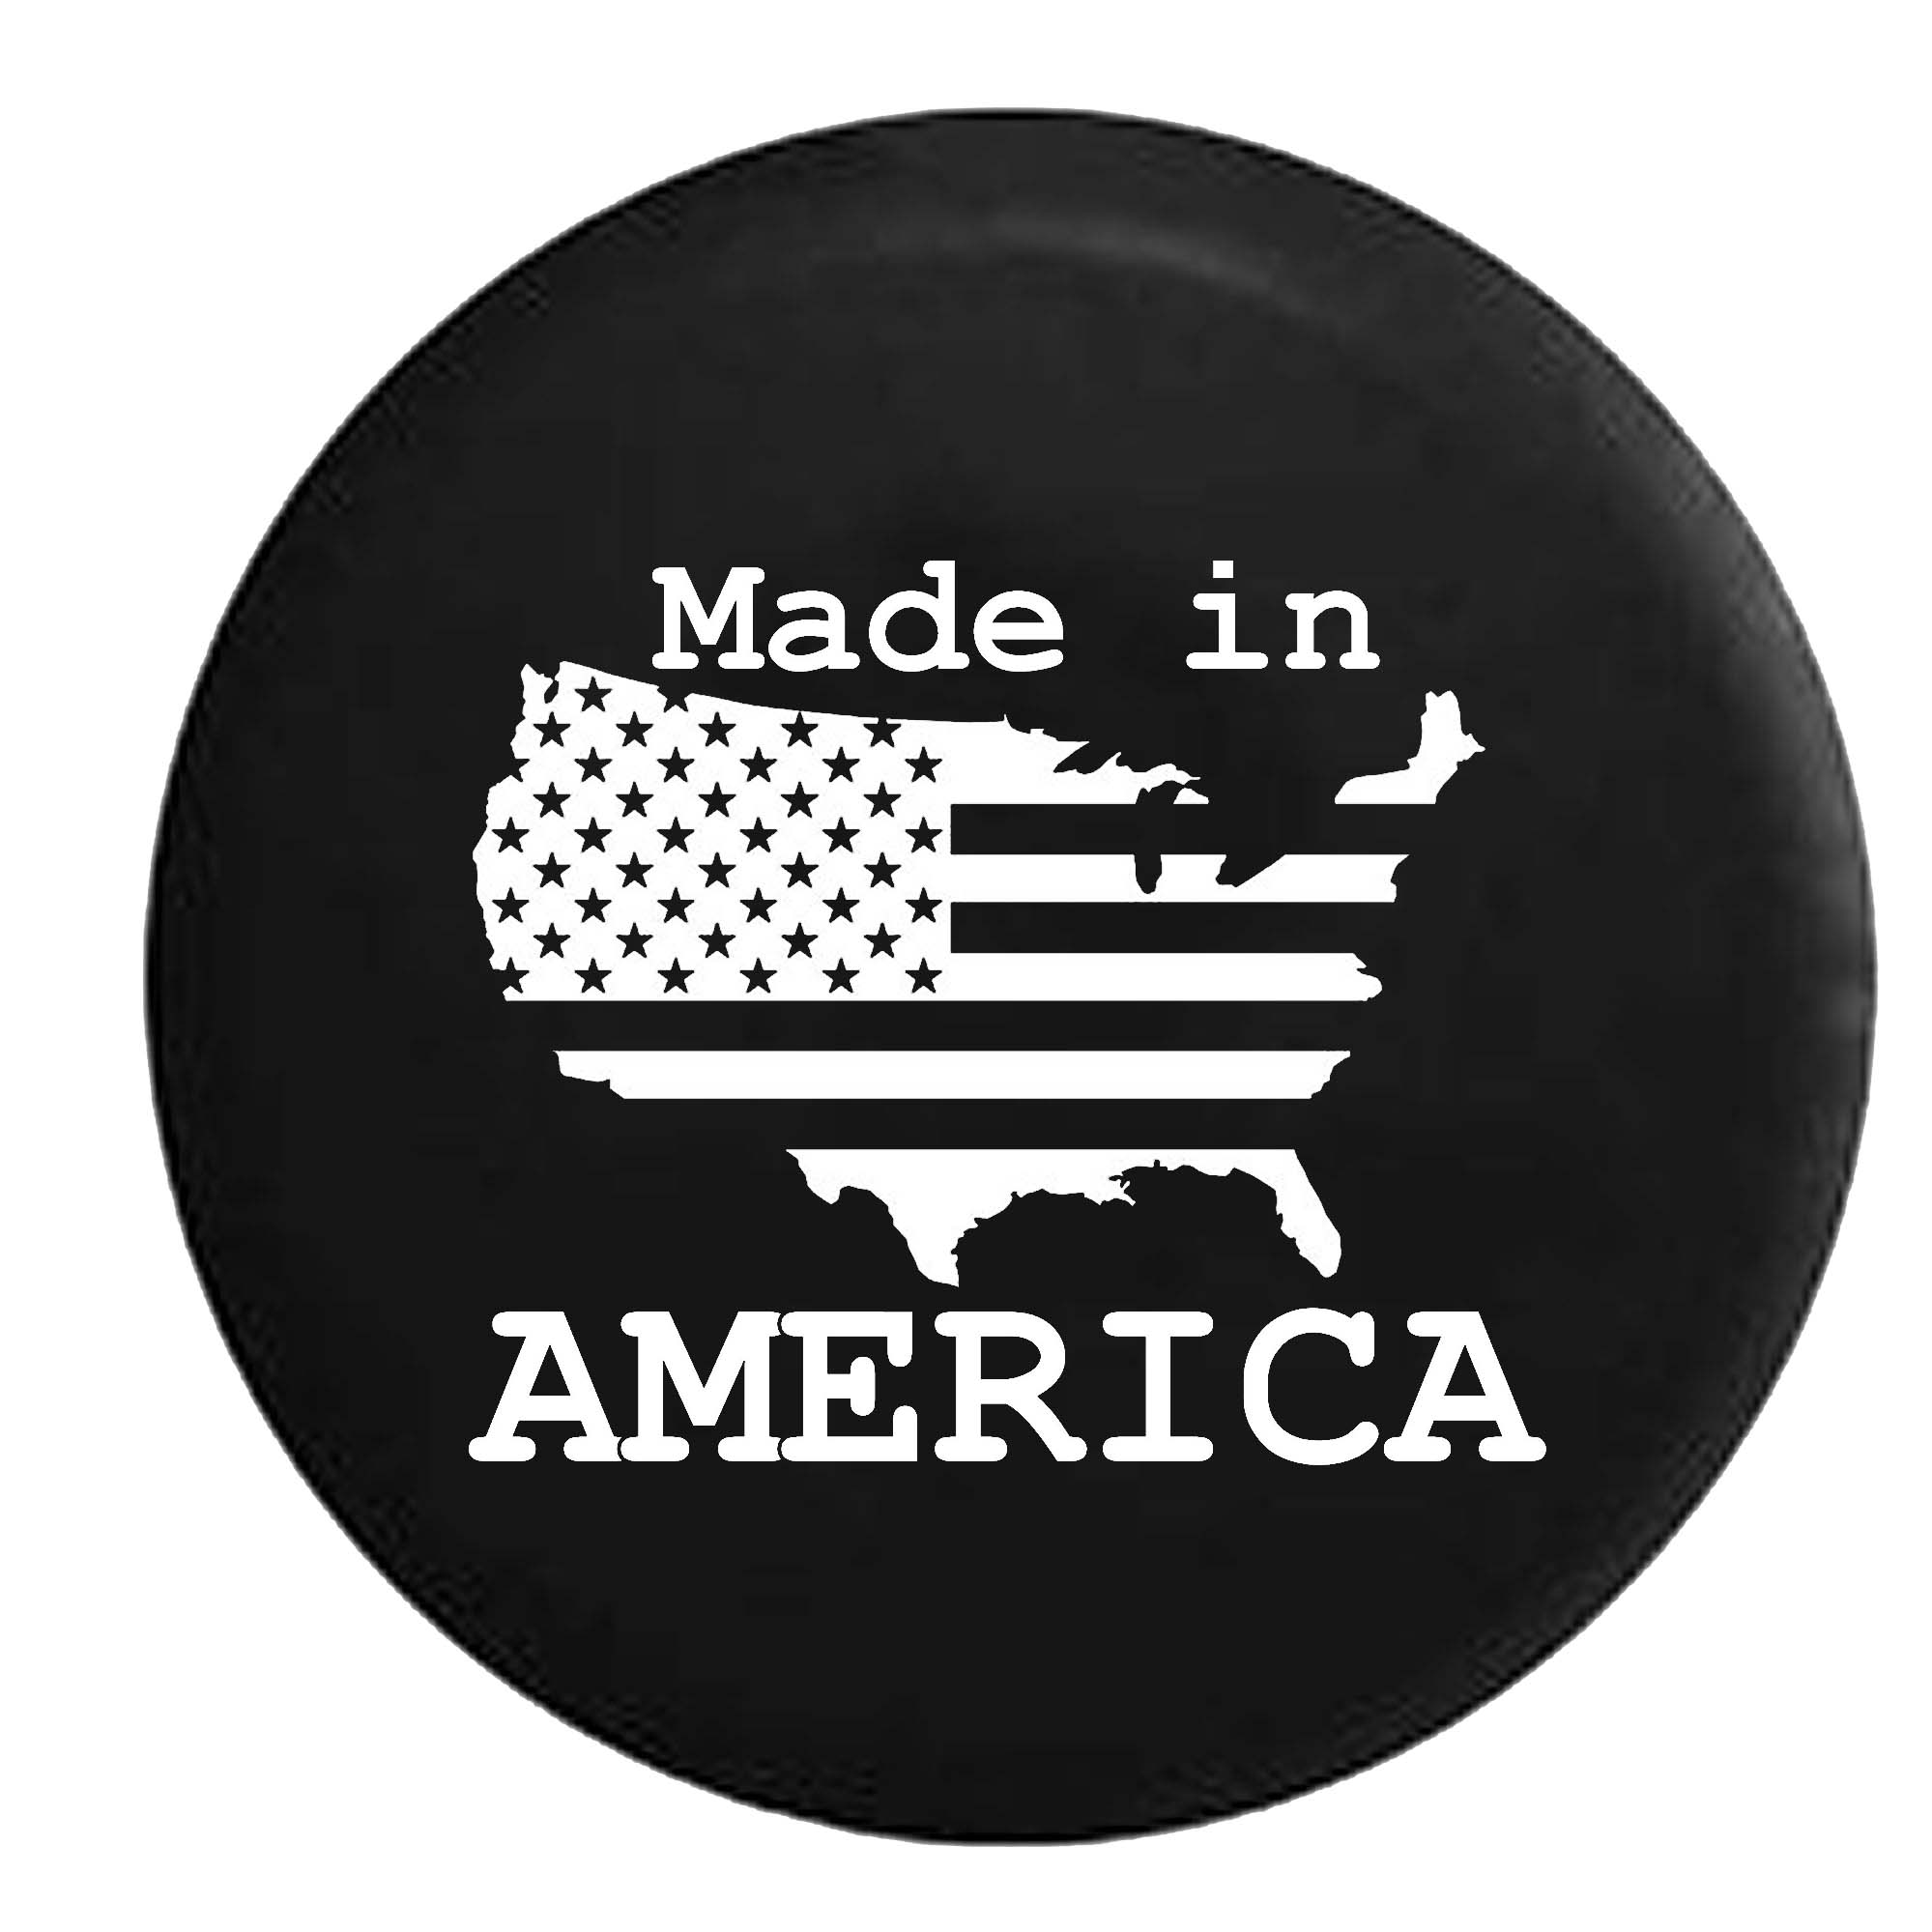 US United States Flag Made In America Trailer RV Spare Tire Cover Vinyl Black 27.5 in